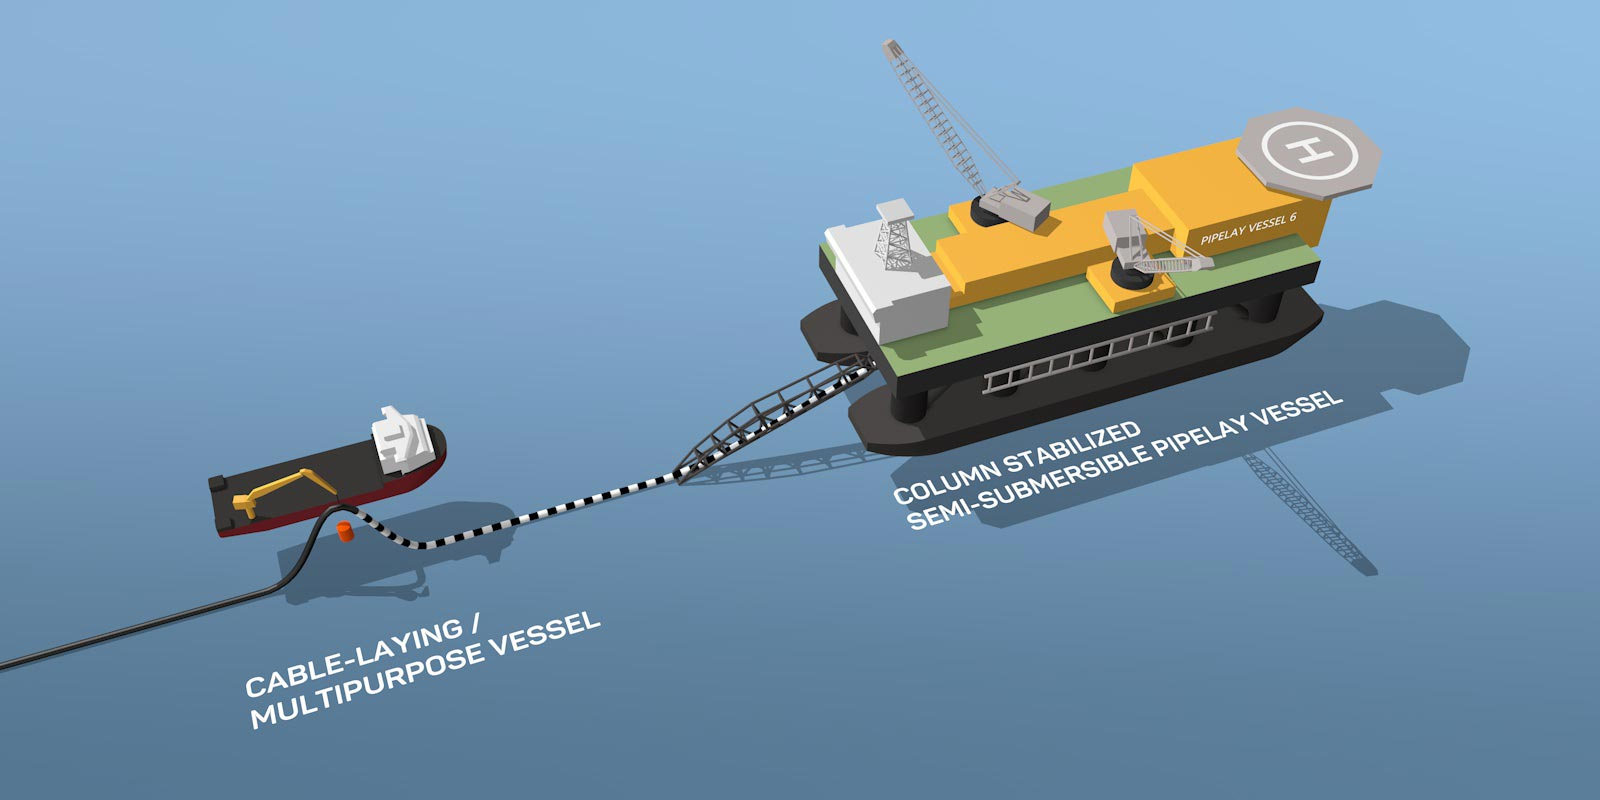 Multi purpose cable laying vessel and a semi-submersible pipelay vessel Castoro sei